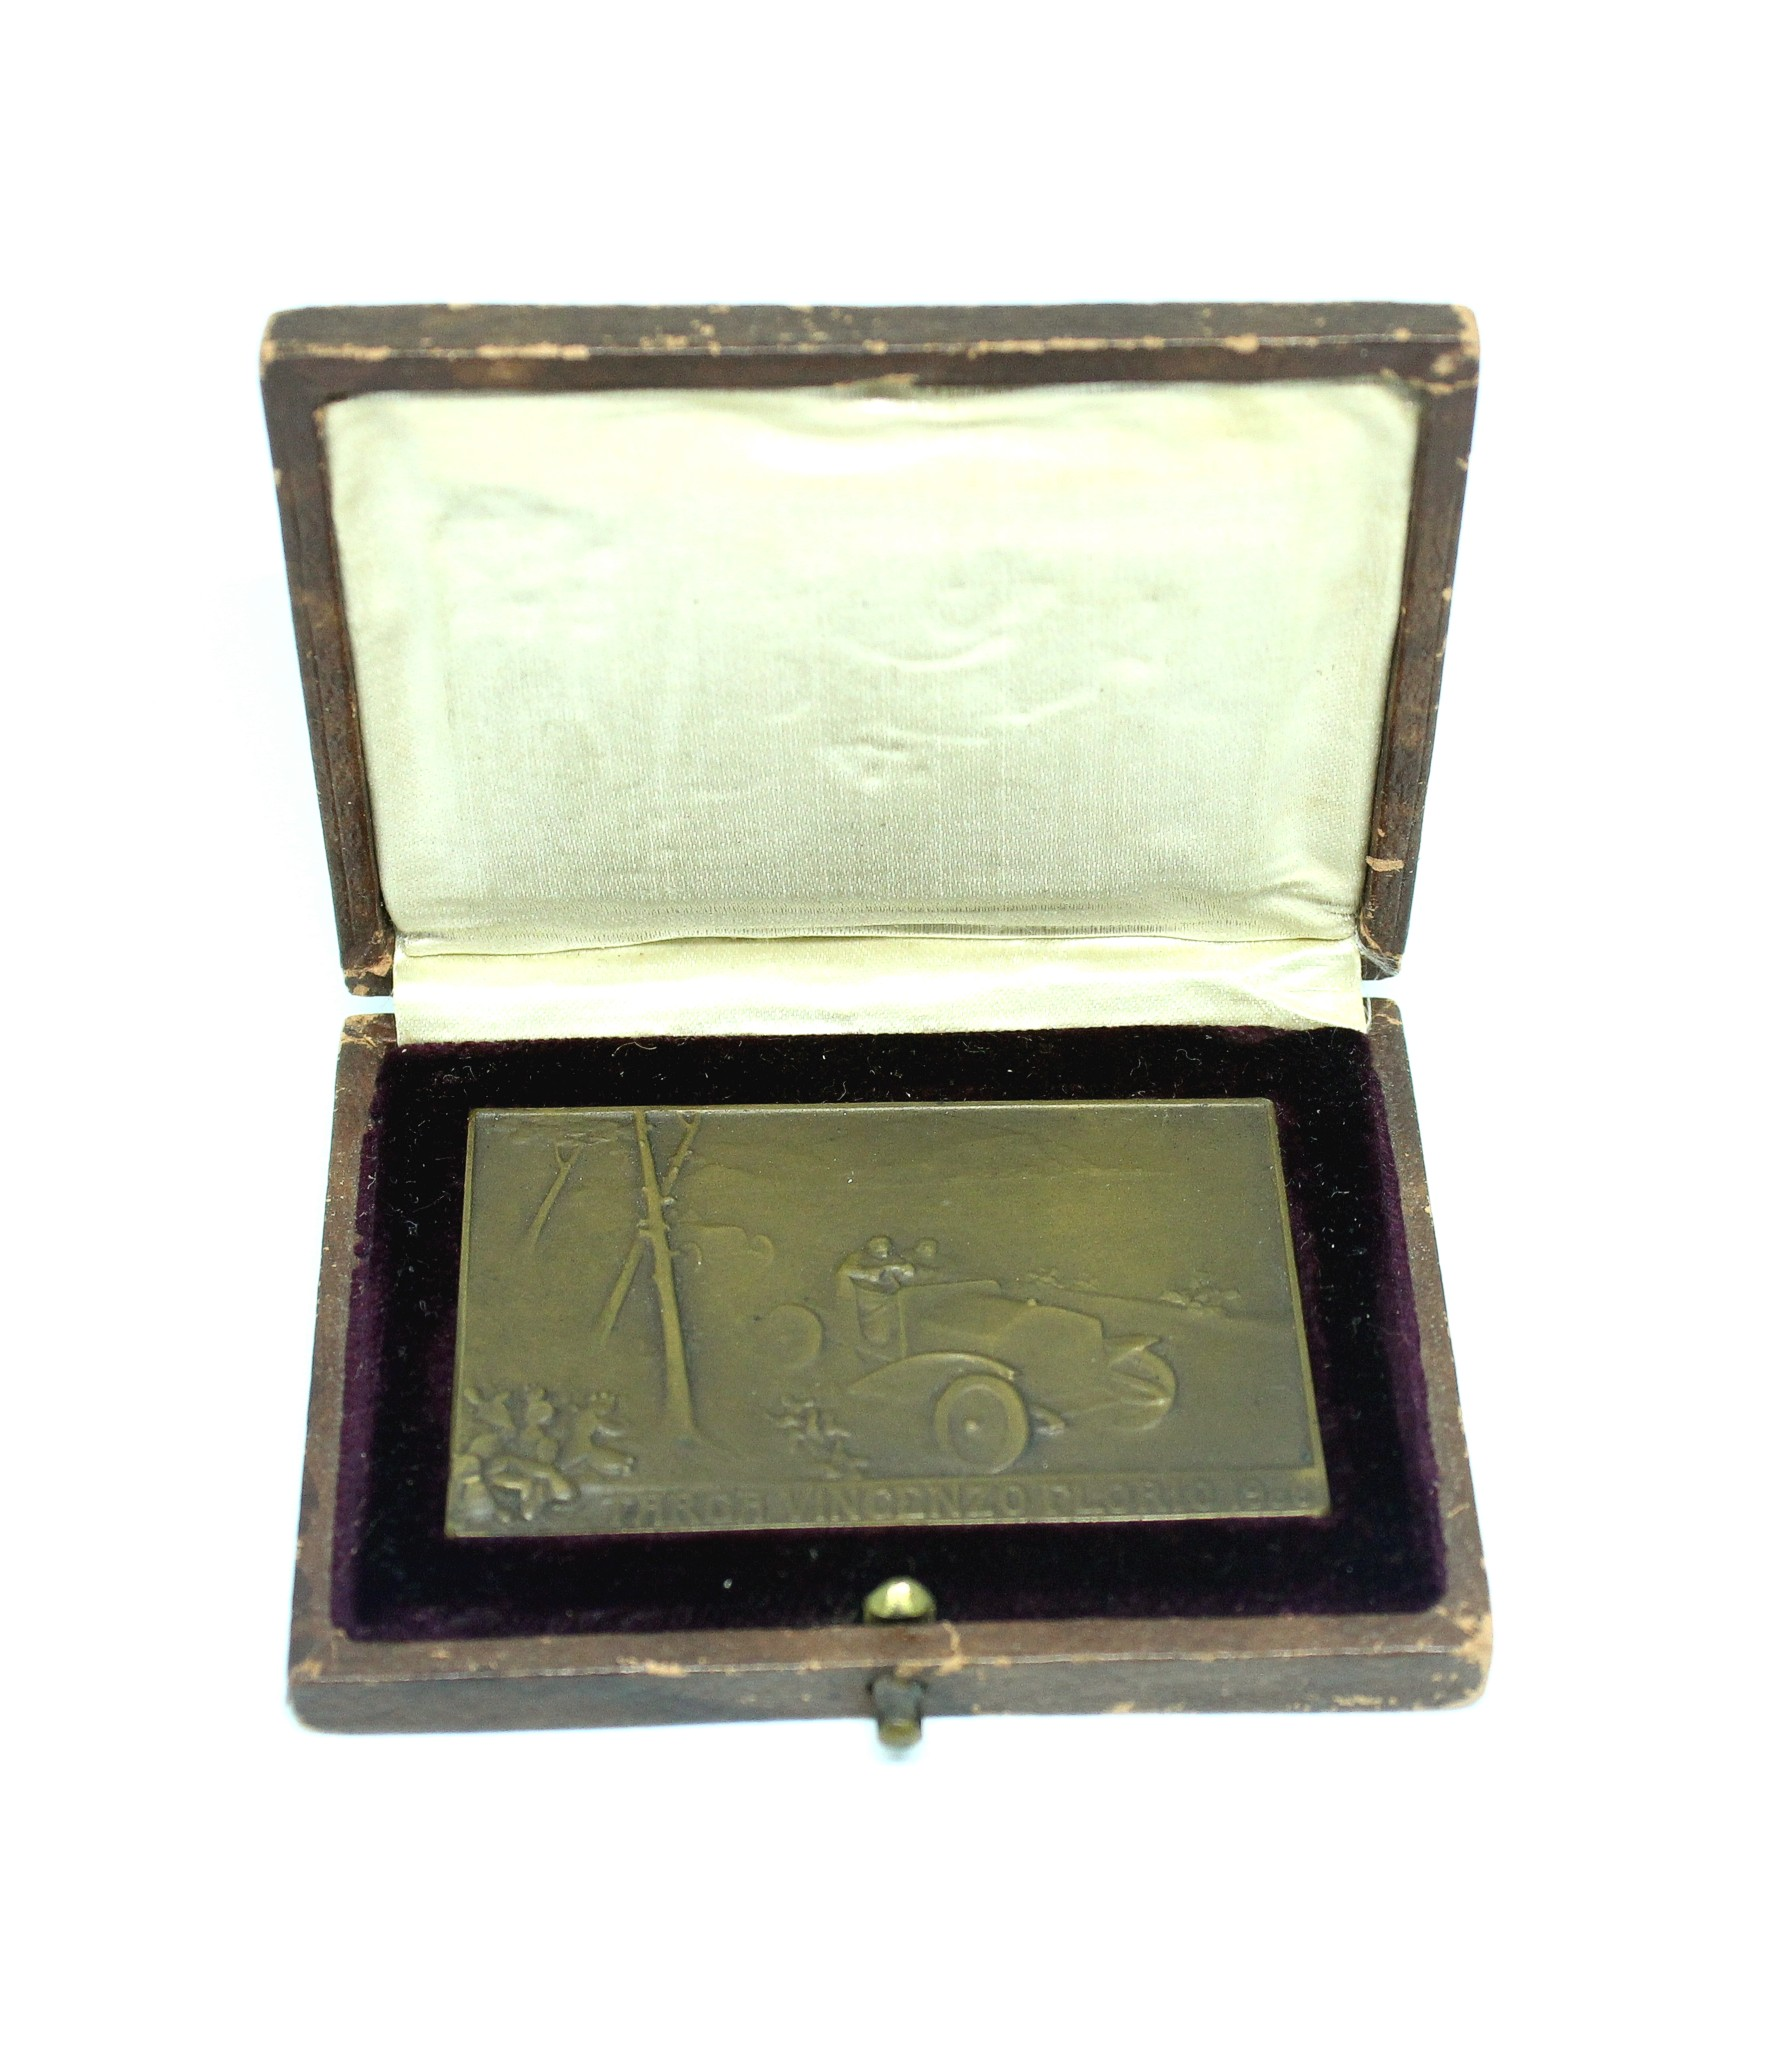 1906 Targa Florio Competitor's plaque in case by Lalique